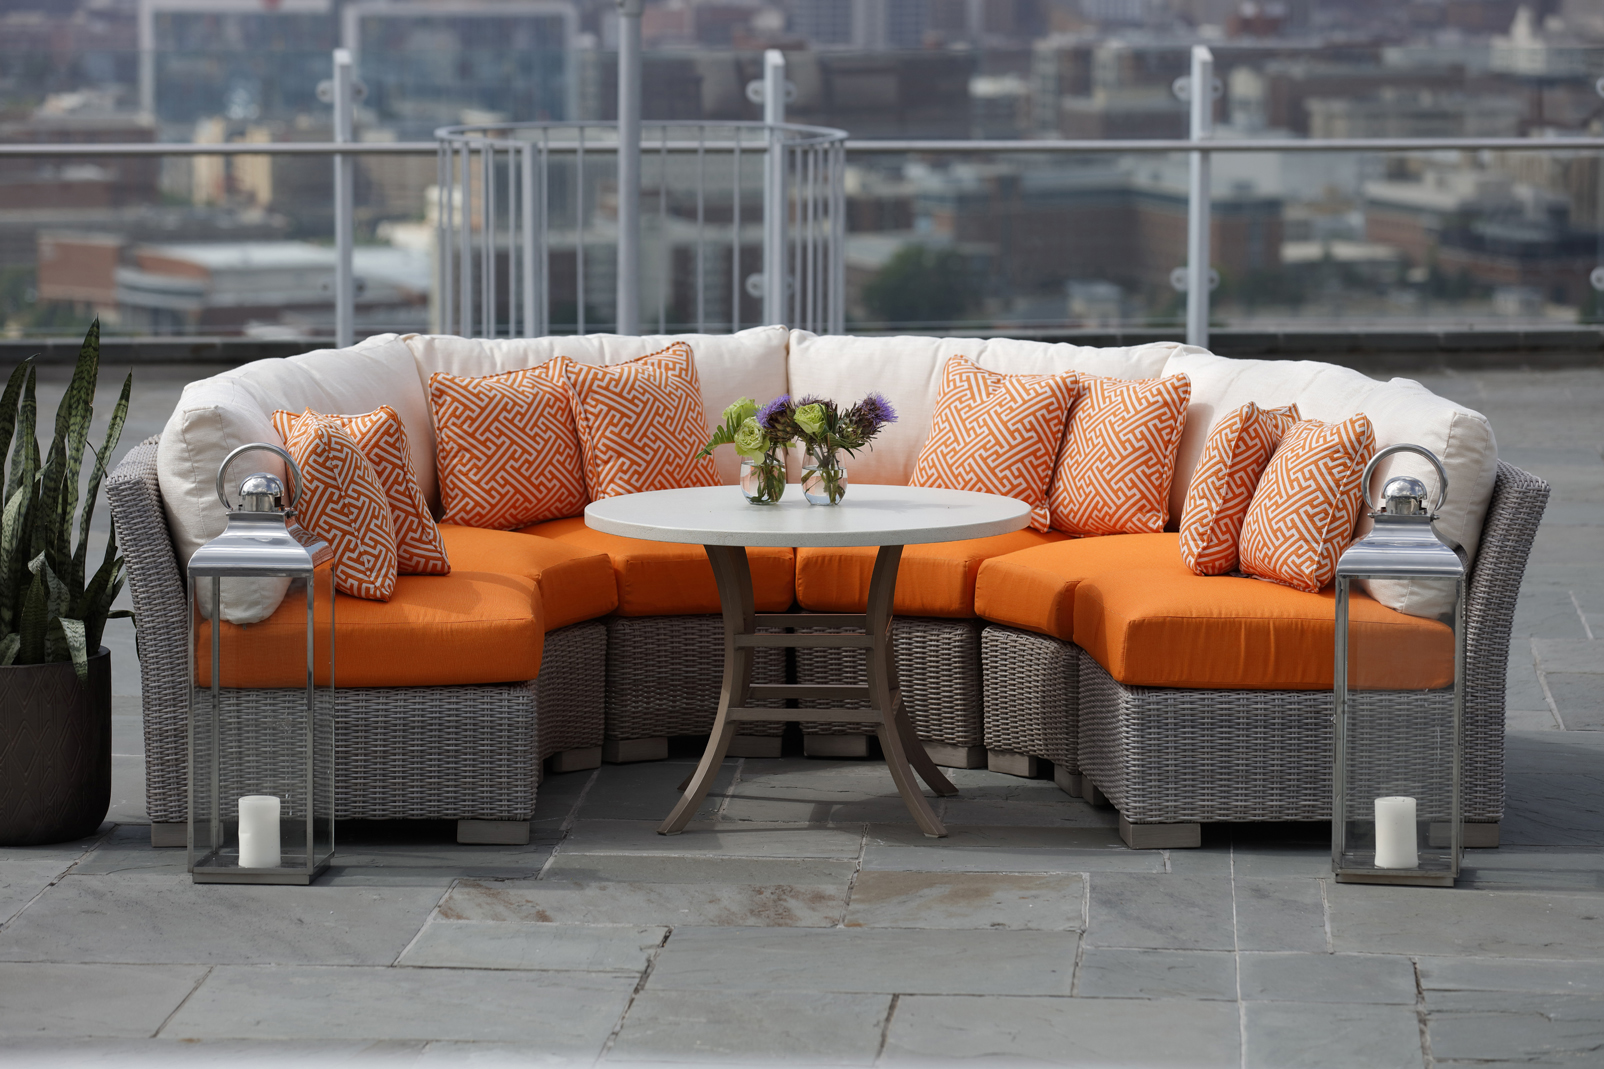 Superieur Summer Classics Offers Outdoor Sectional Seating Designed To Fit Any Space.  No Matter How Big (or Small) Your Living Area, You Can Get A Look You Love.